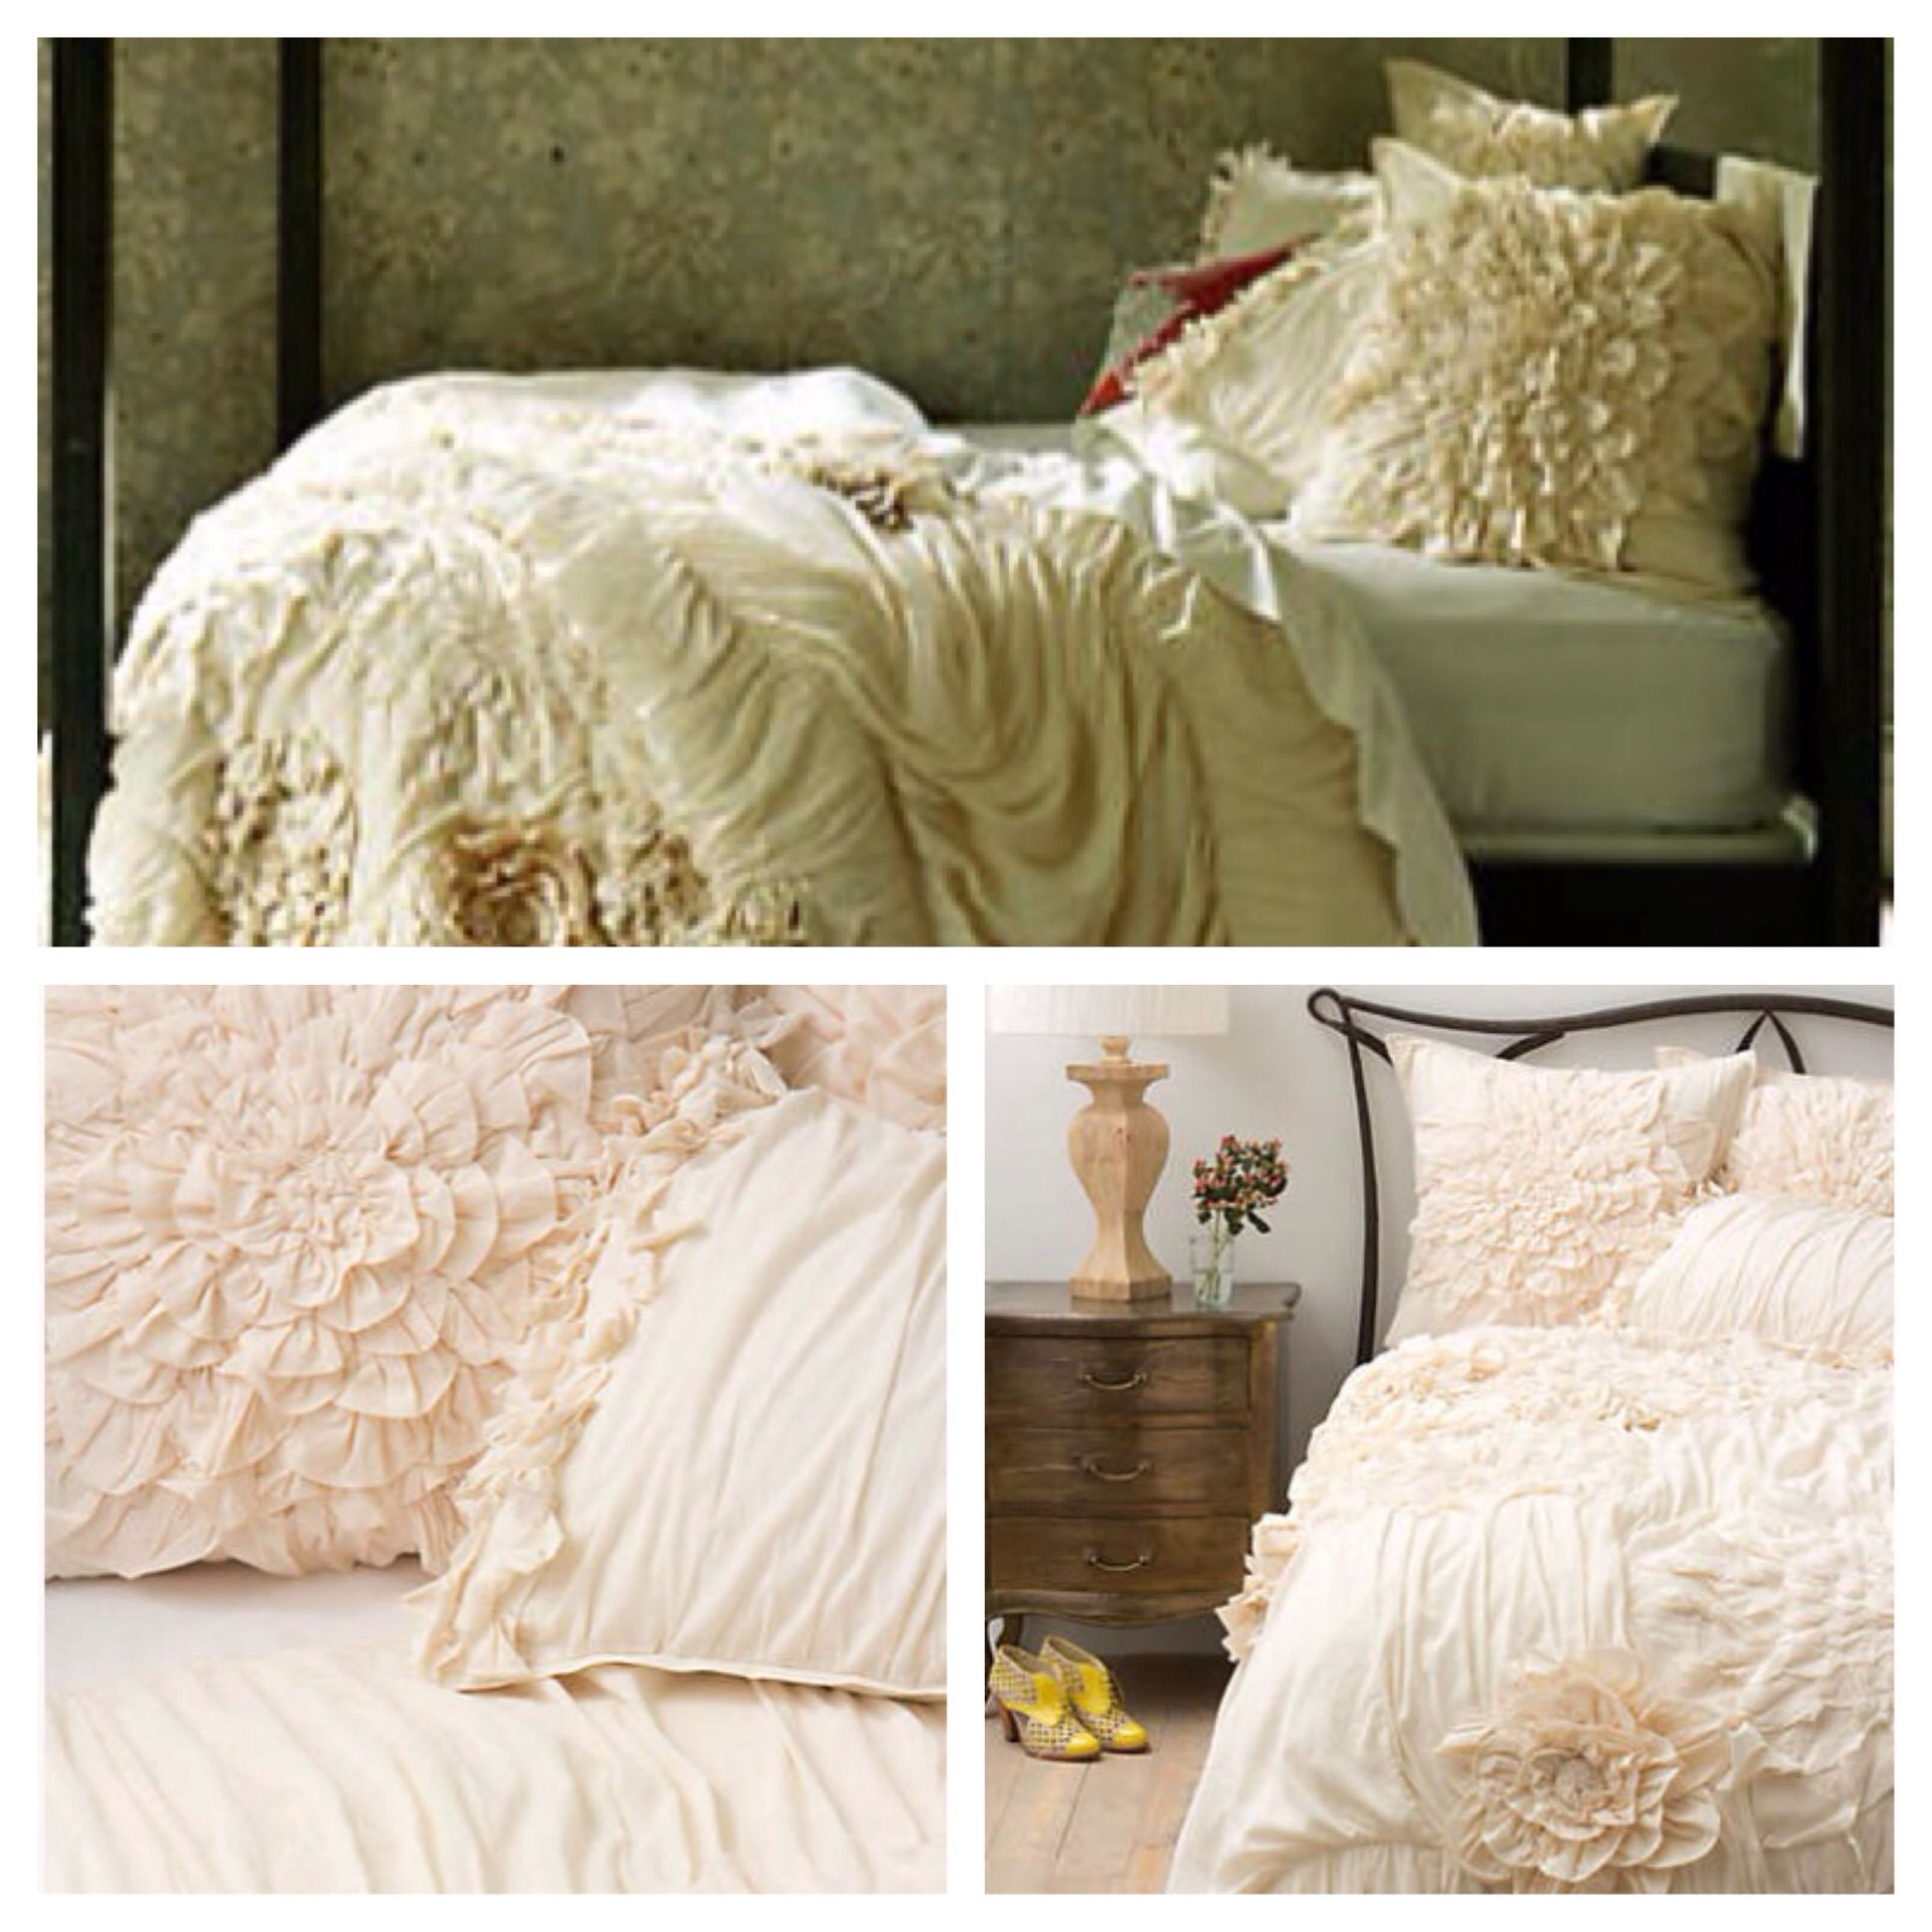 Couldn't be more in love with this bedding from Anthropologie